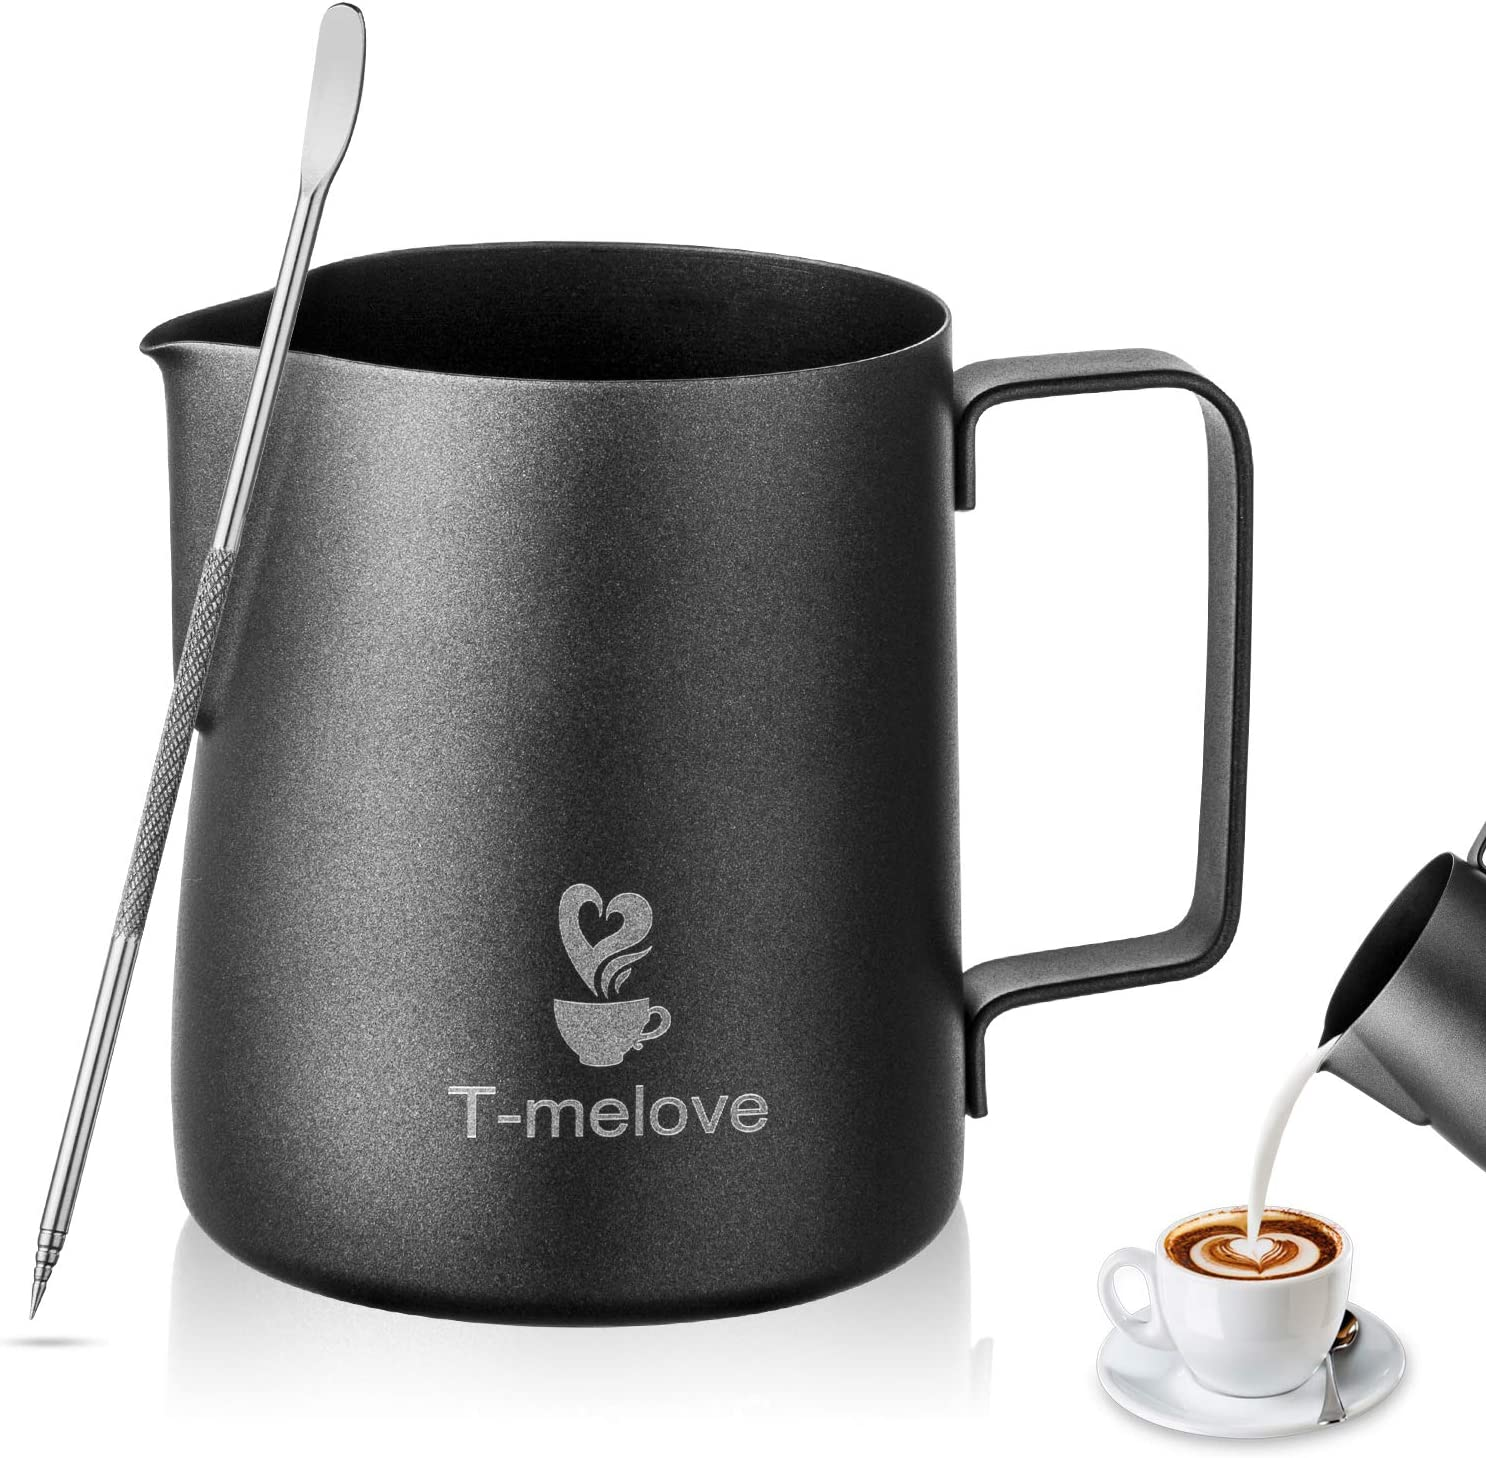 Milk Frothing Pitcher 350ml/12oz 304 Stainless Steel,Black Espresso Steaming Pitcher Coffee Milk Frother Cup with Decorating Art Pen (12oz / 350ml)